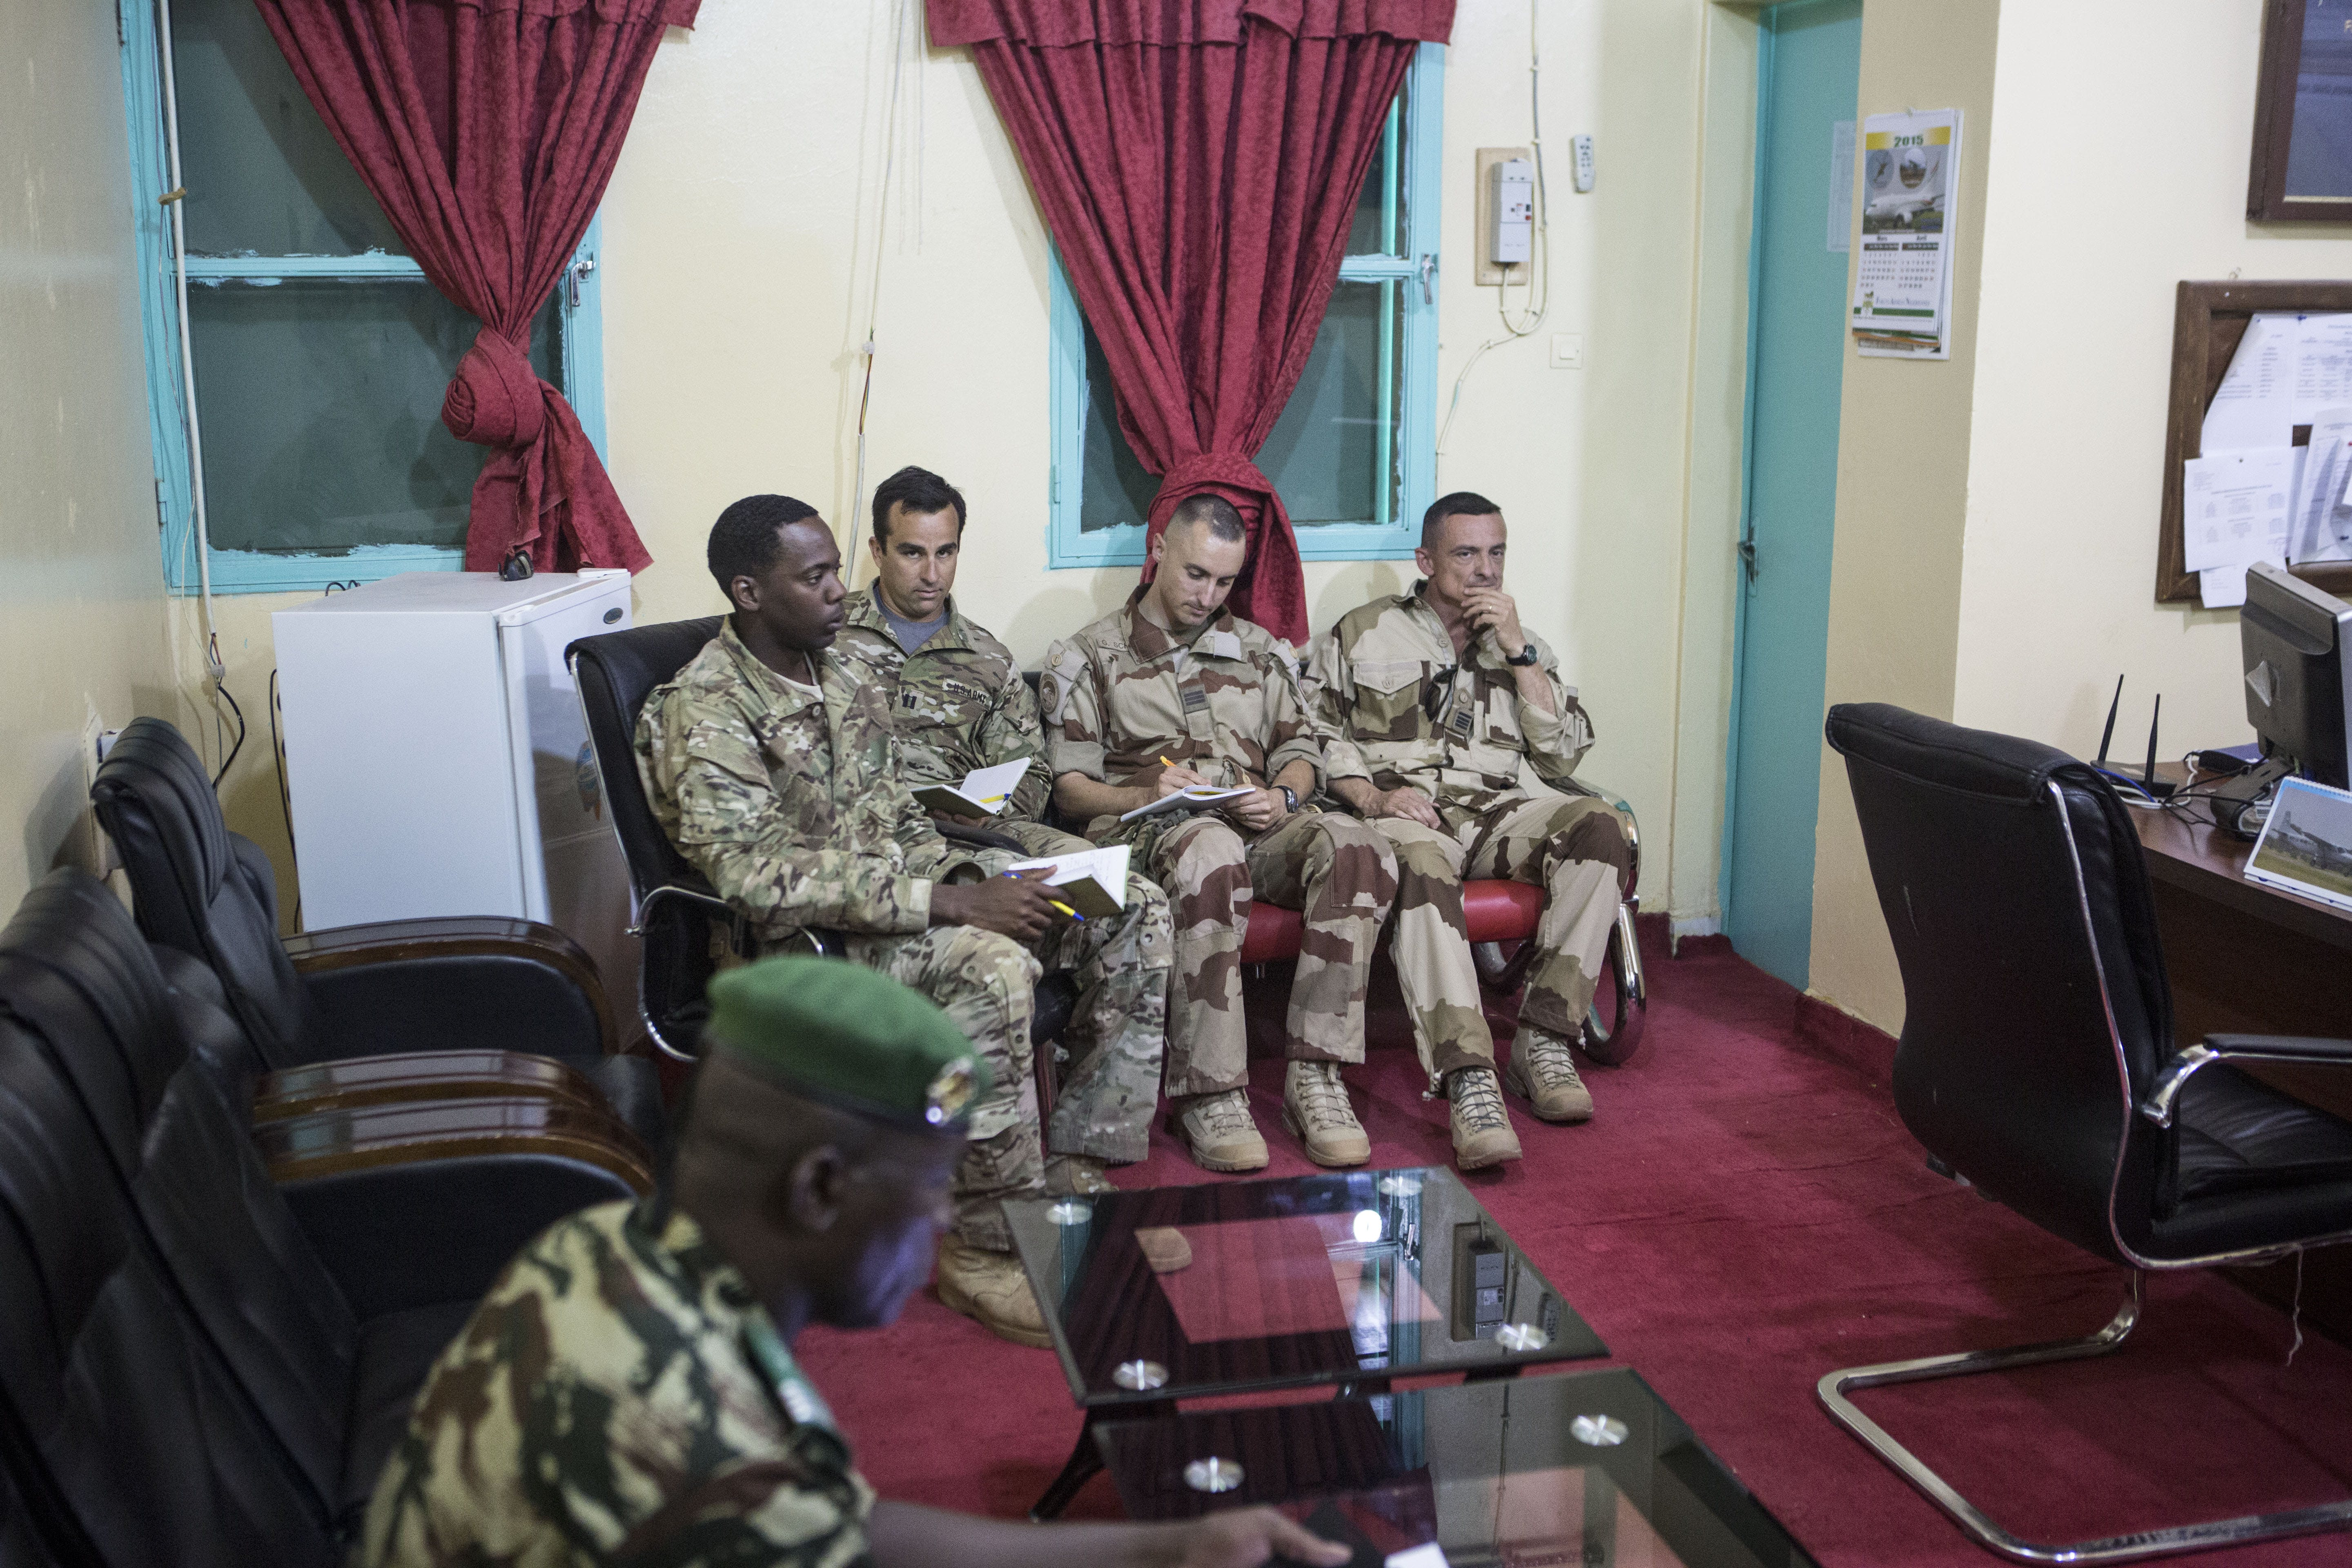 American and French soldiers attend a daily briefing with the Nigerien military commander in charge of the fight against Boko Haram (not pictured) at a Nigerien military base in Diffa, Niger, March 26, 2015.